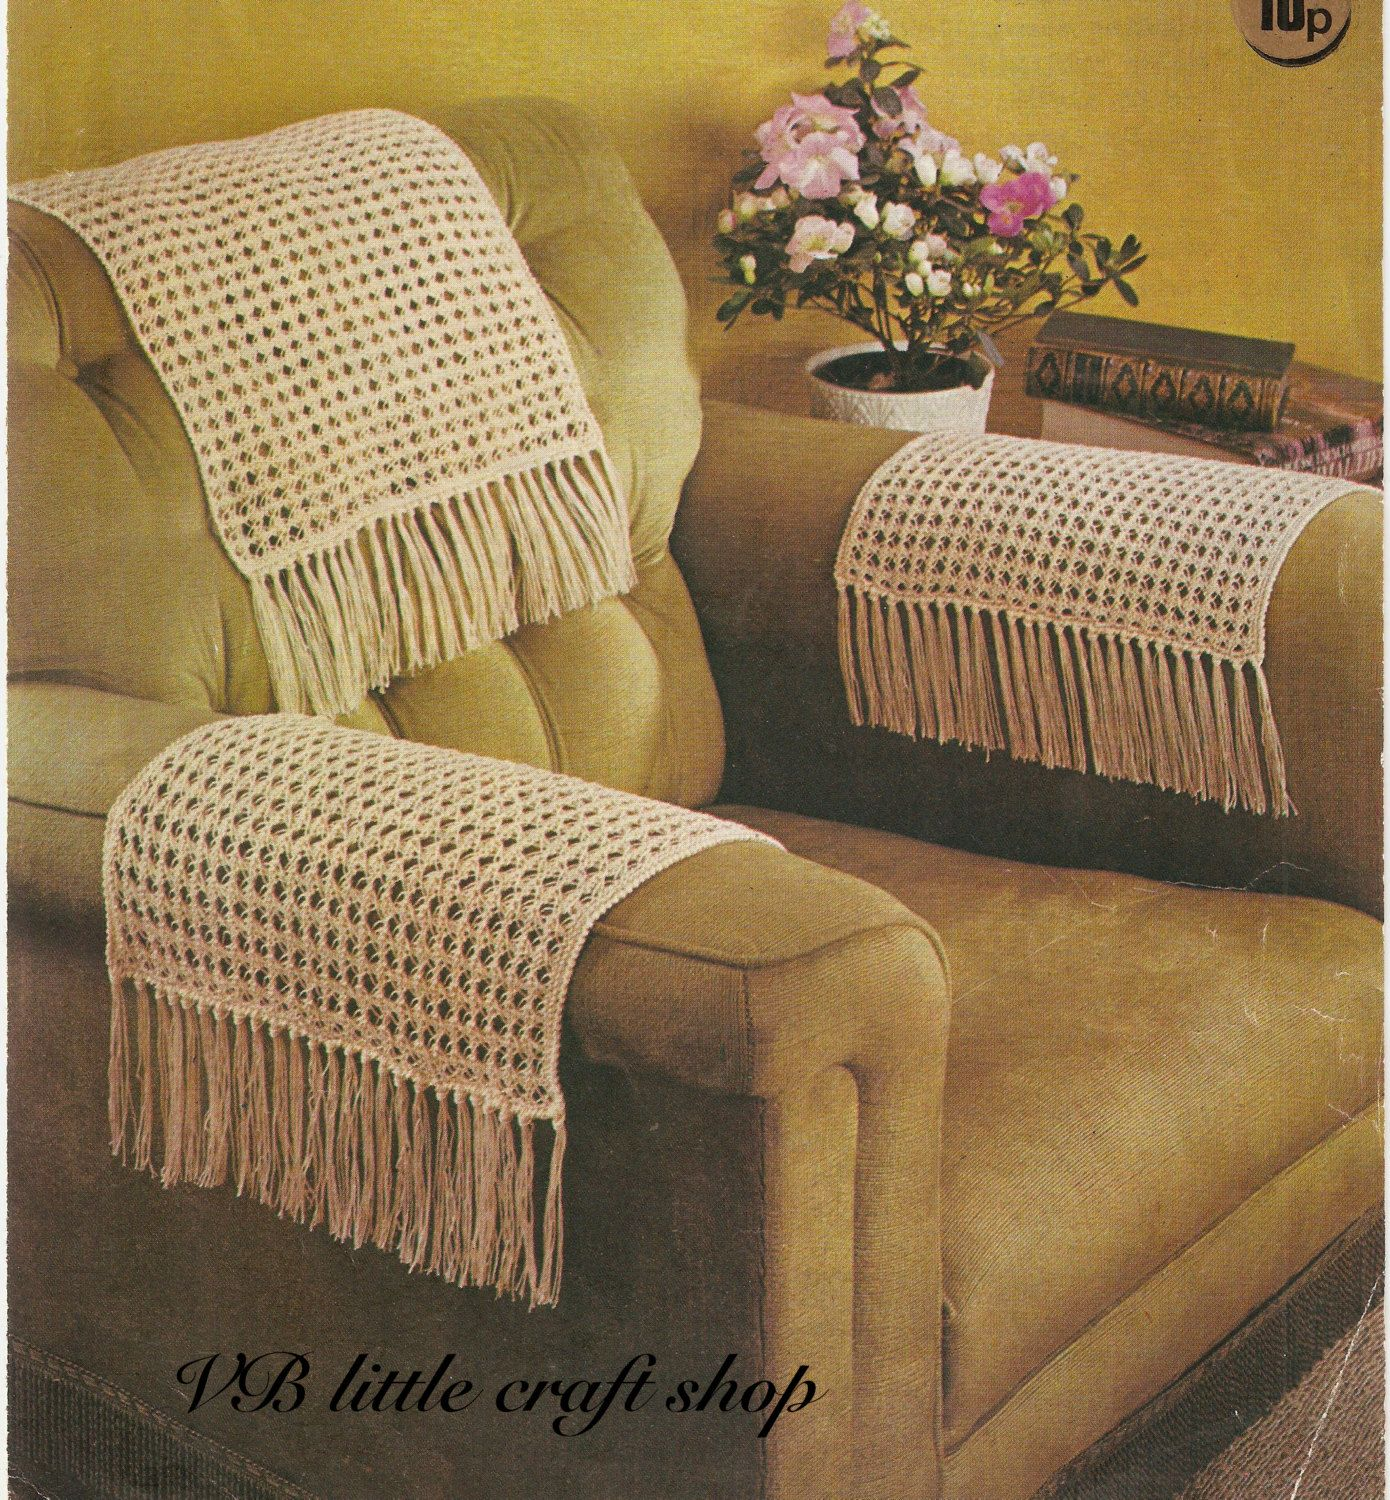 sofa slipcover patterns free mat chairback and chair arms covers knitting pattern instant